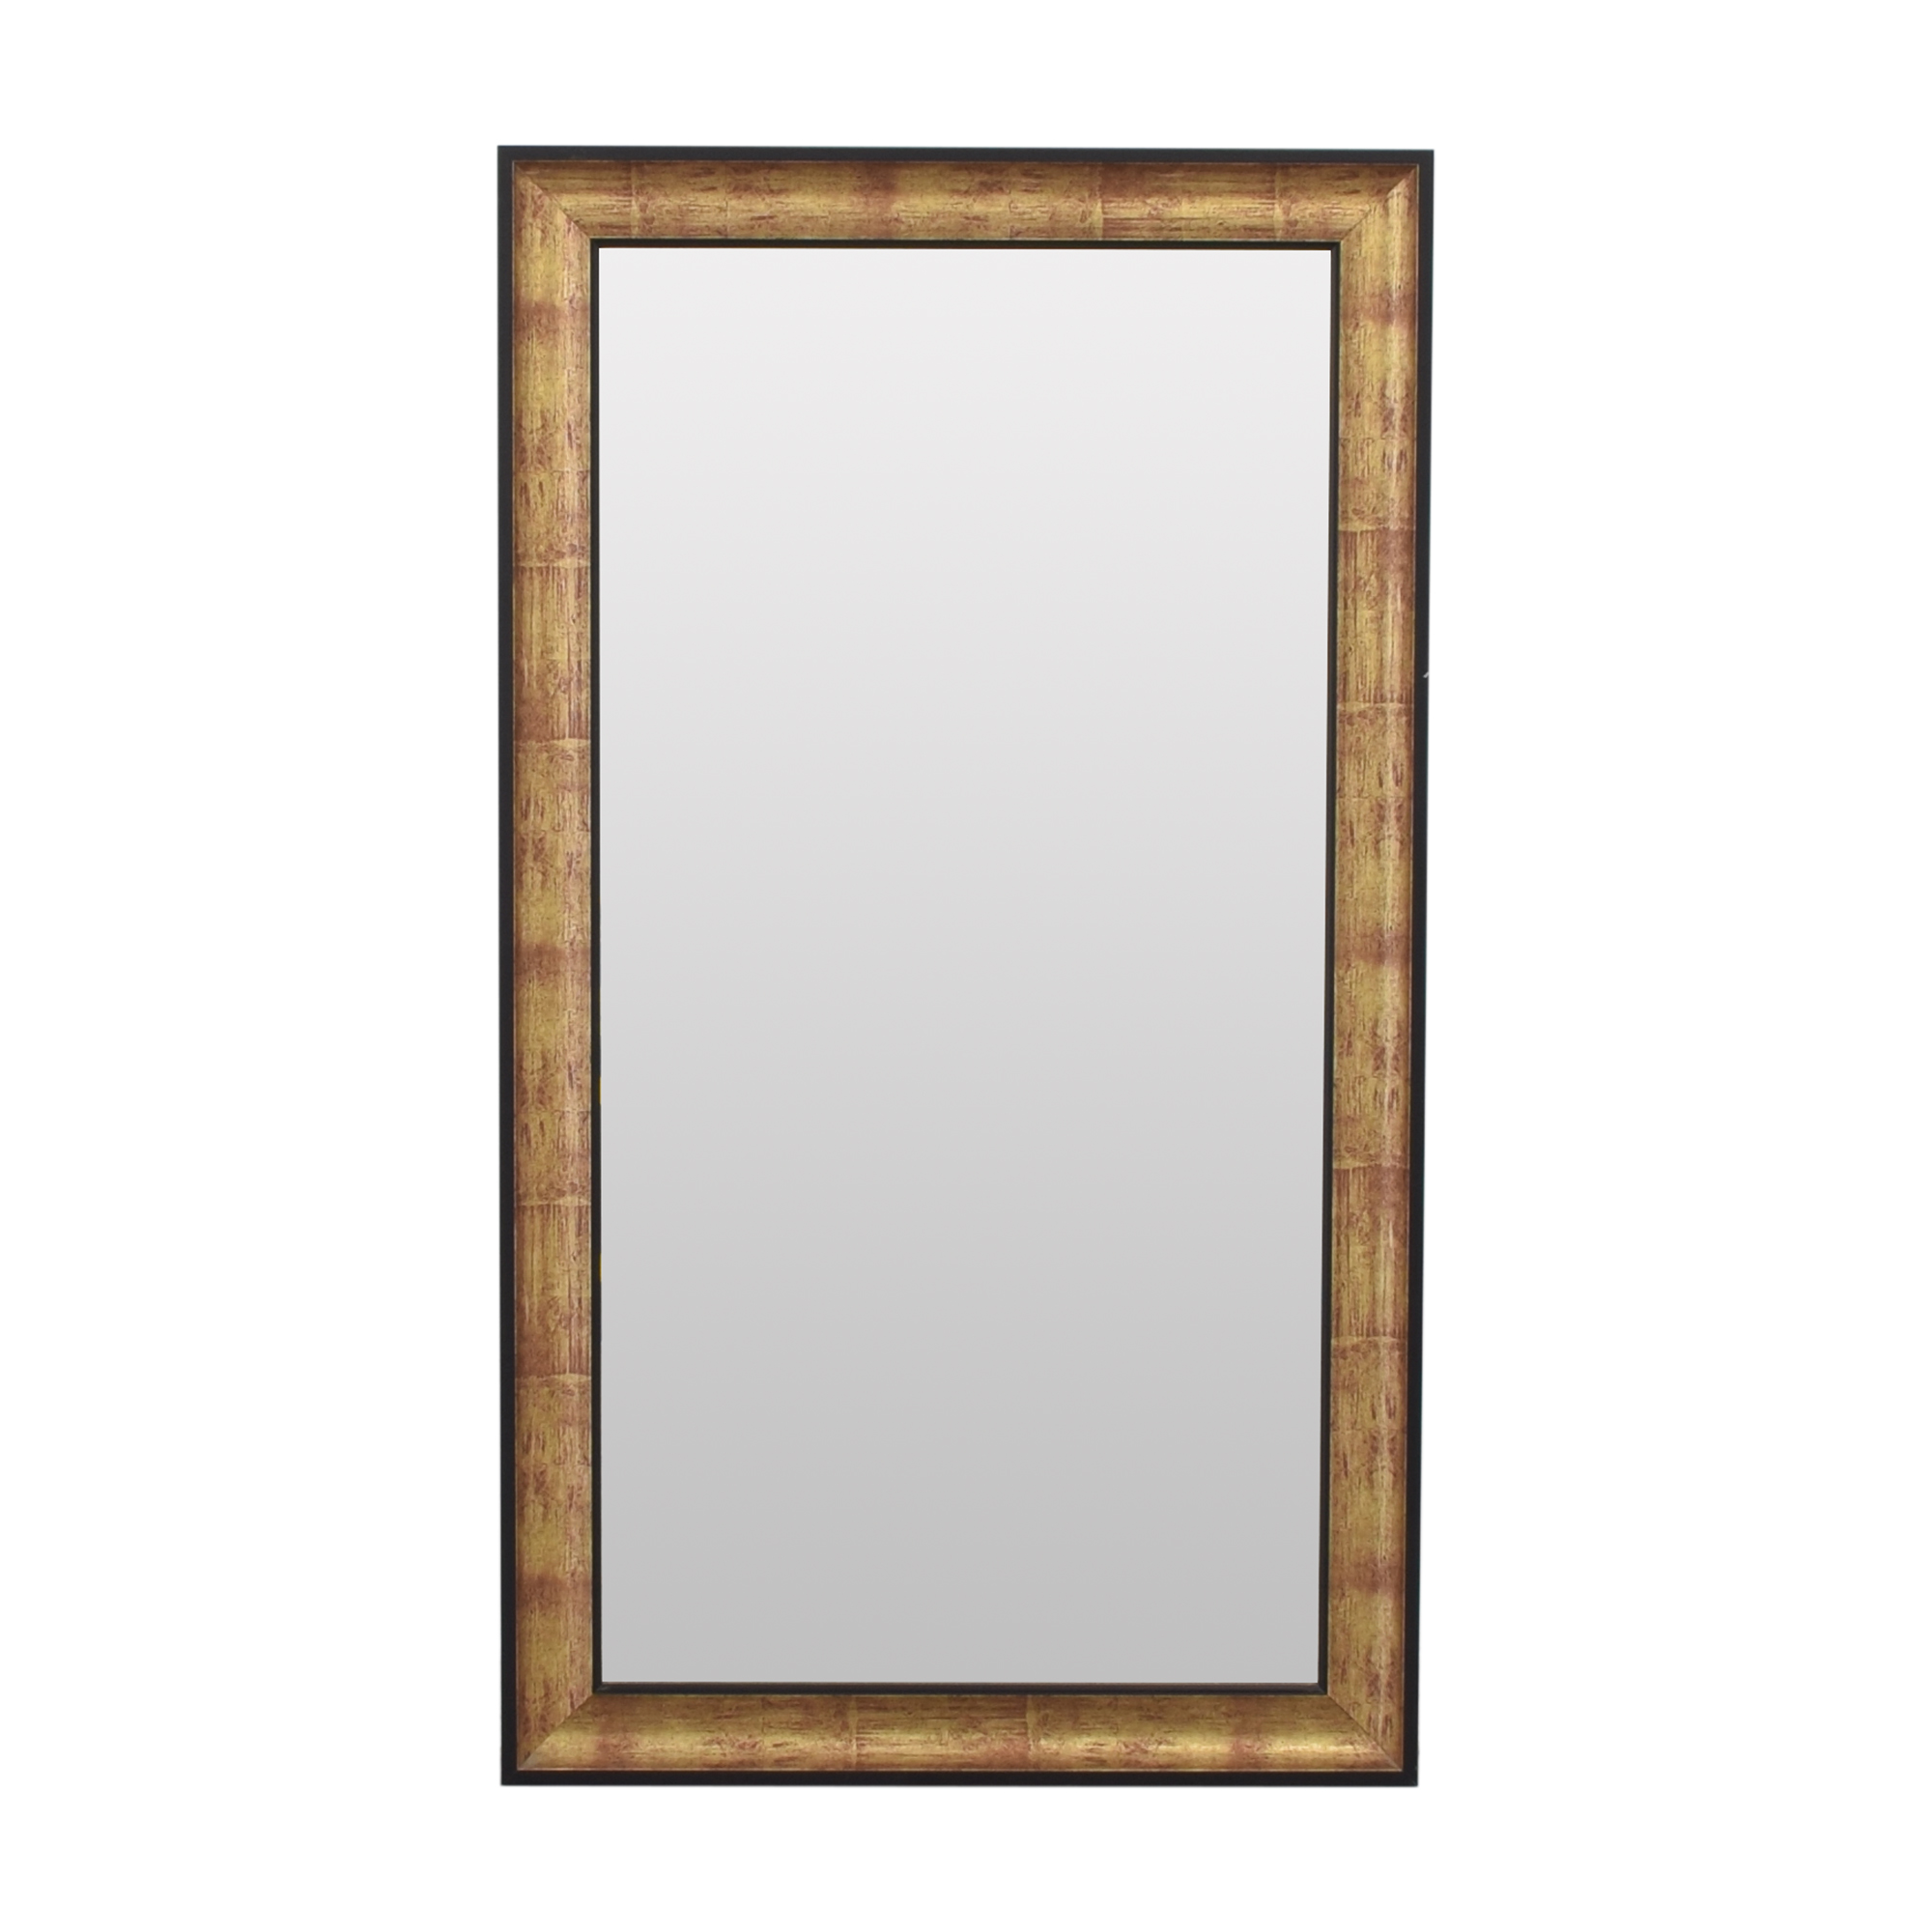 John-Richard Framed Wall Mirror sale